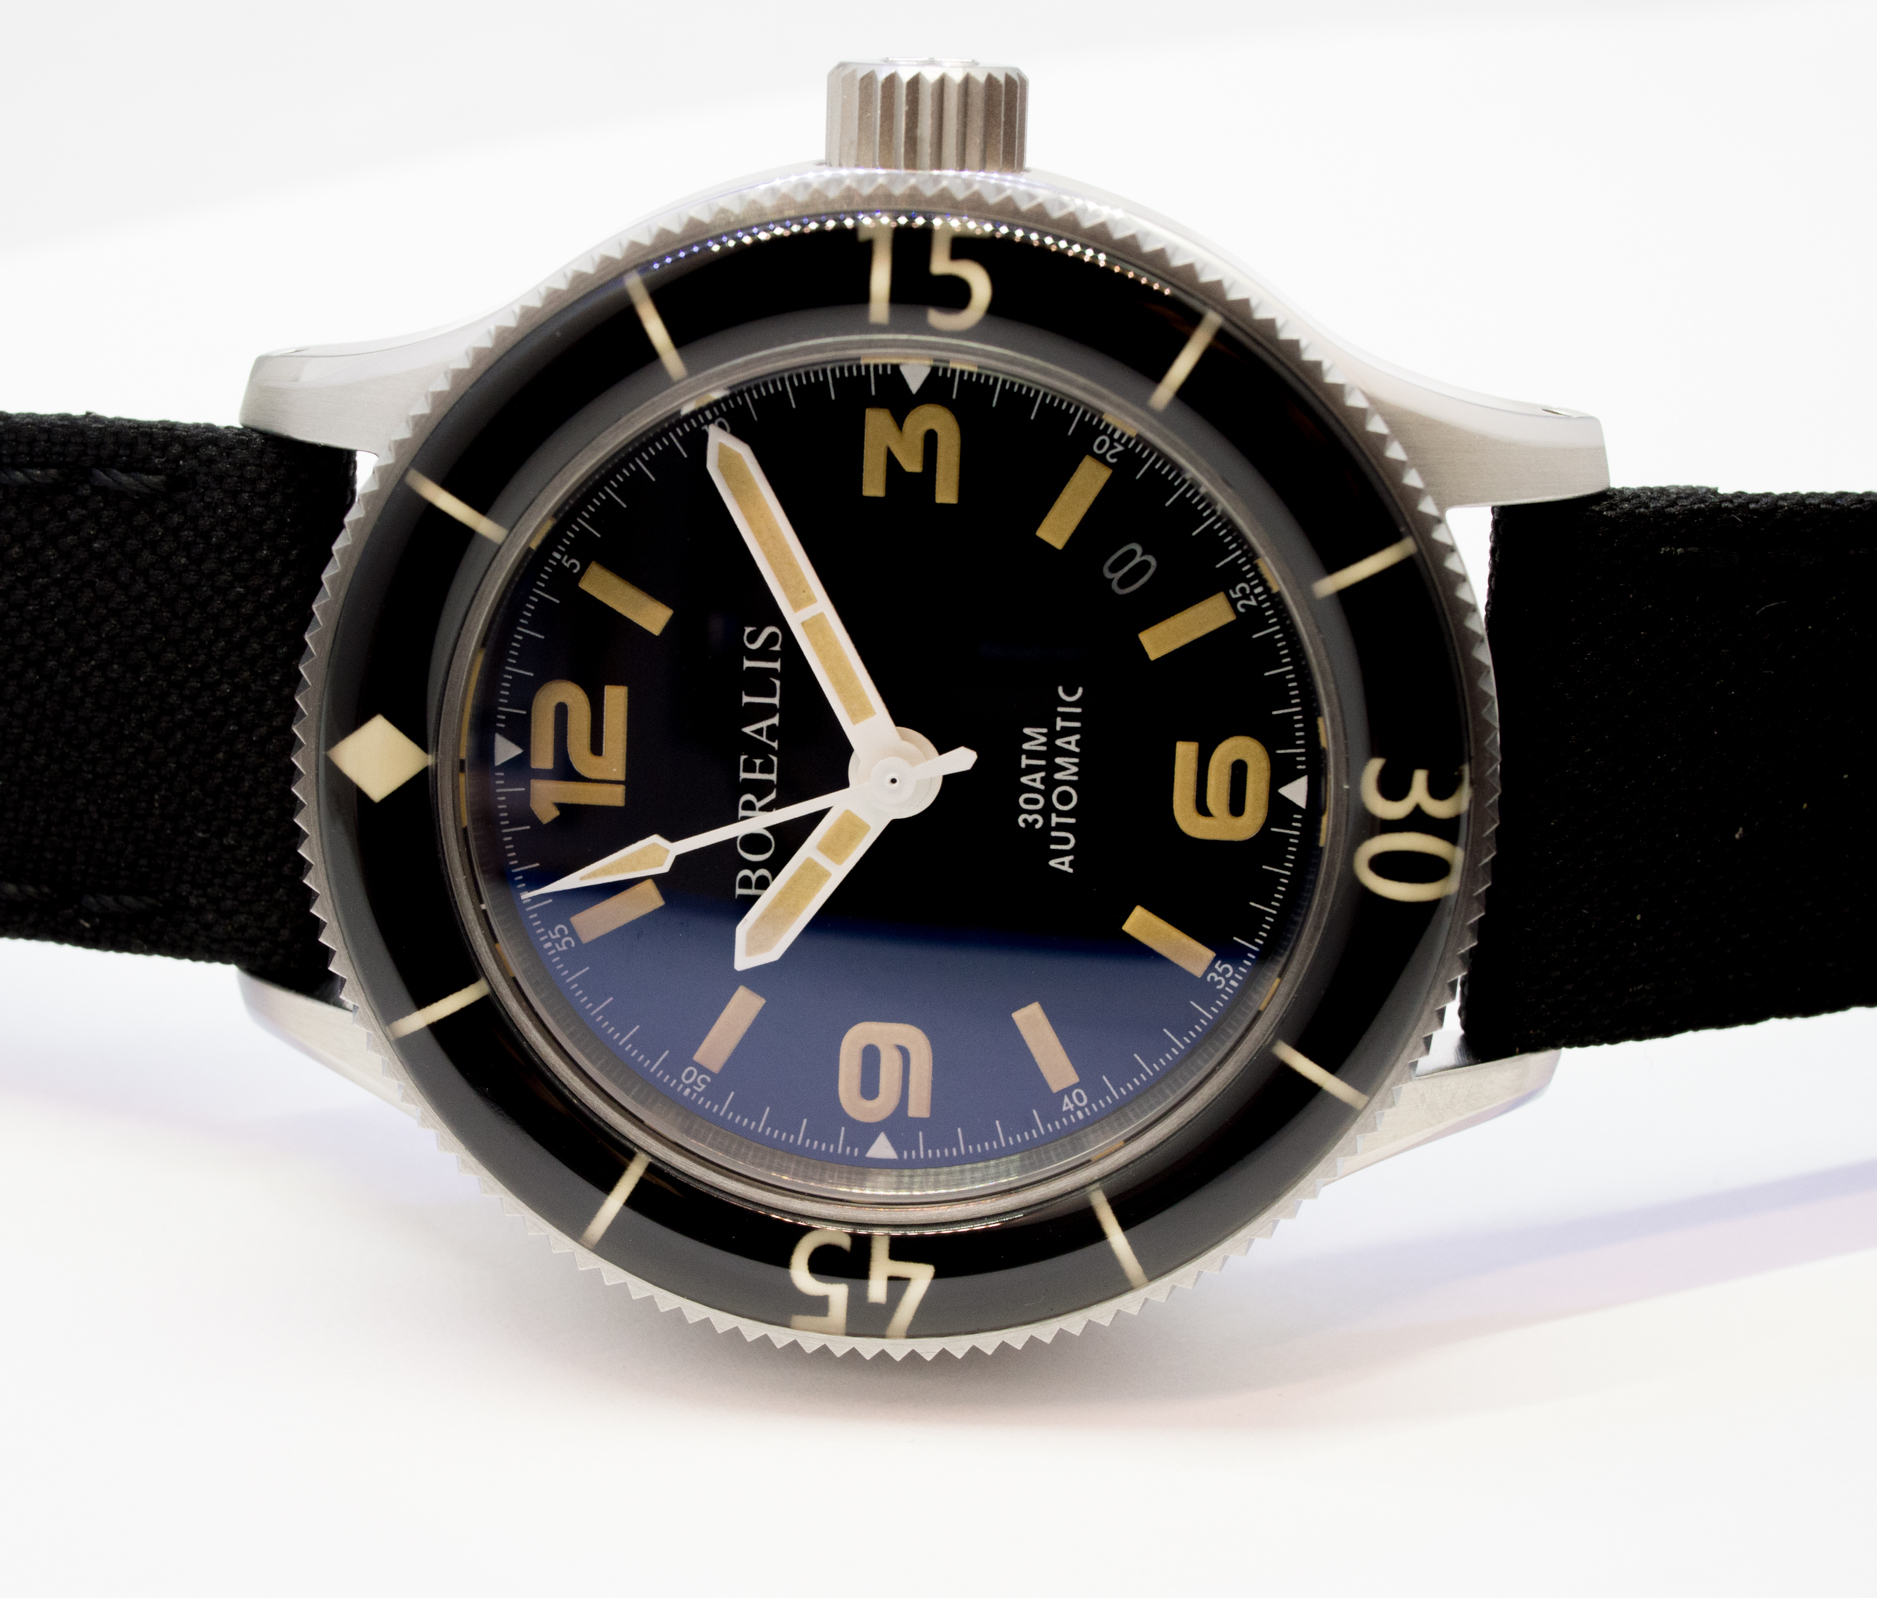 Borealis Sea Storm Version B No Date Old Radium Lume